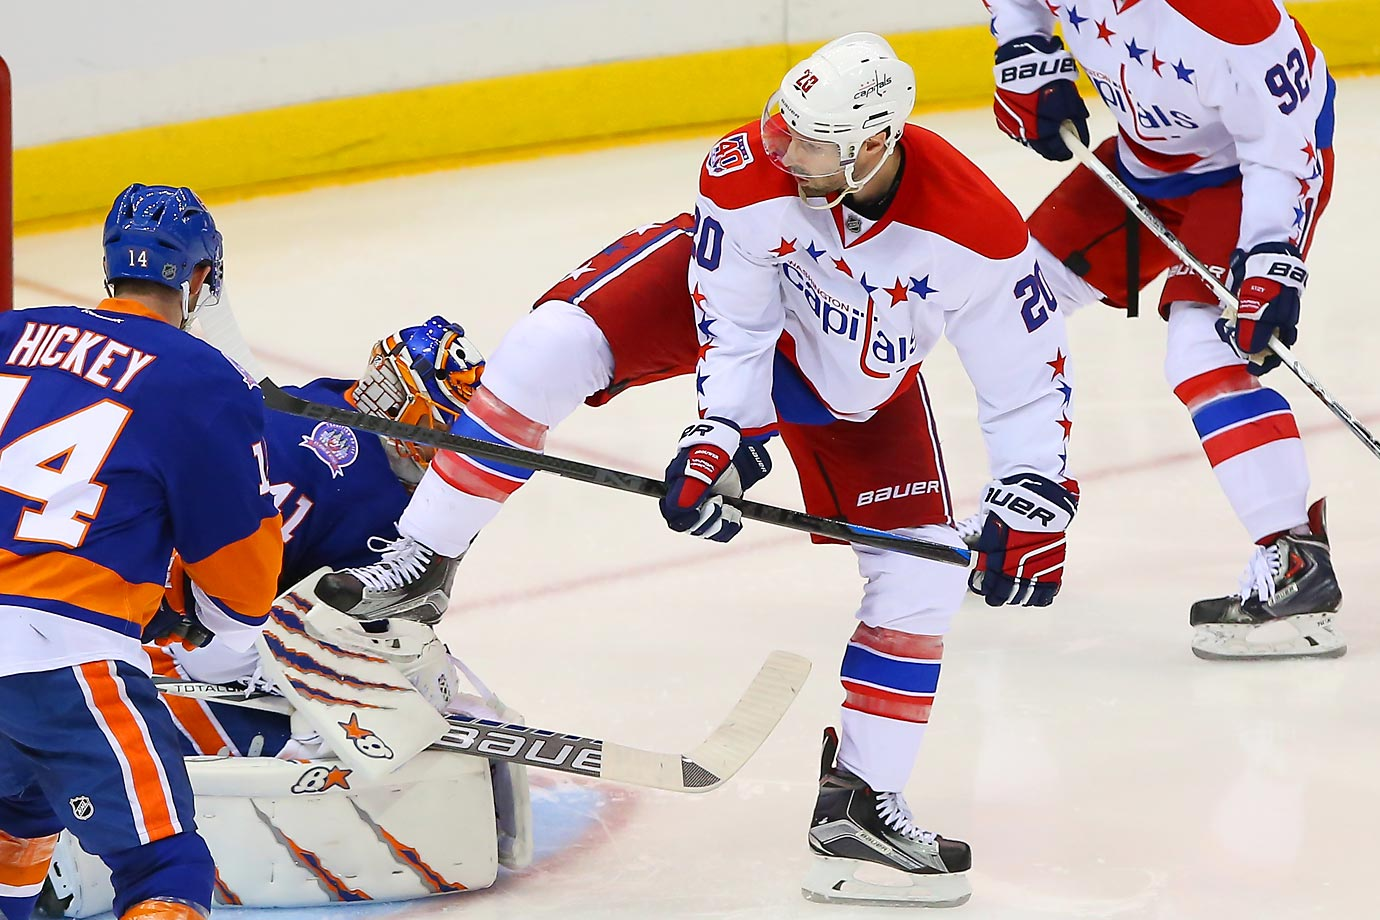 Troy Brouwer of the Capitals battles against Islanders goalie Jaroslav Halak. New York defeated the Washington Capitals 2-1 in overtime in Game 3.